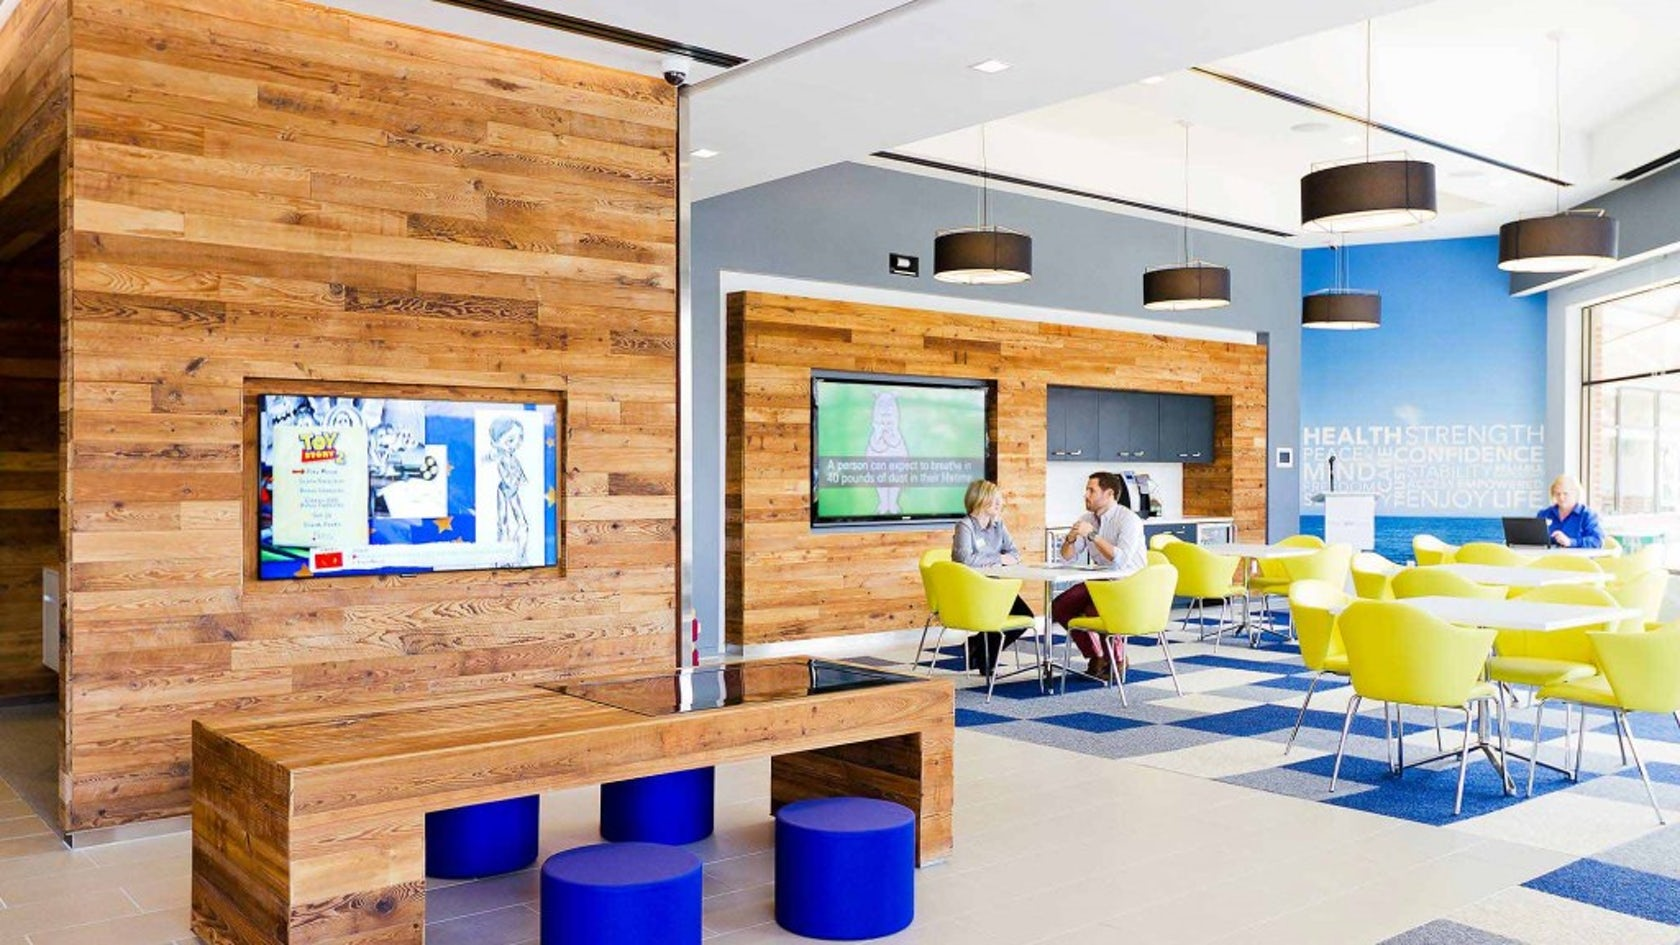 Horizon Blue Cross Blue Shield of New Jersey on Architizer